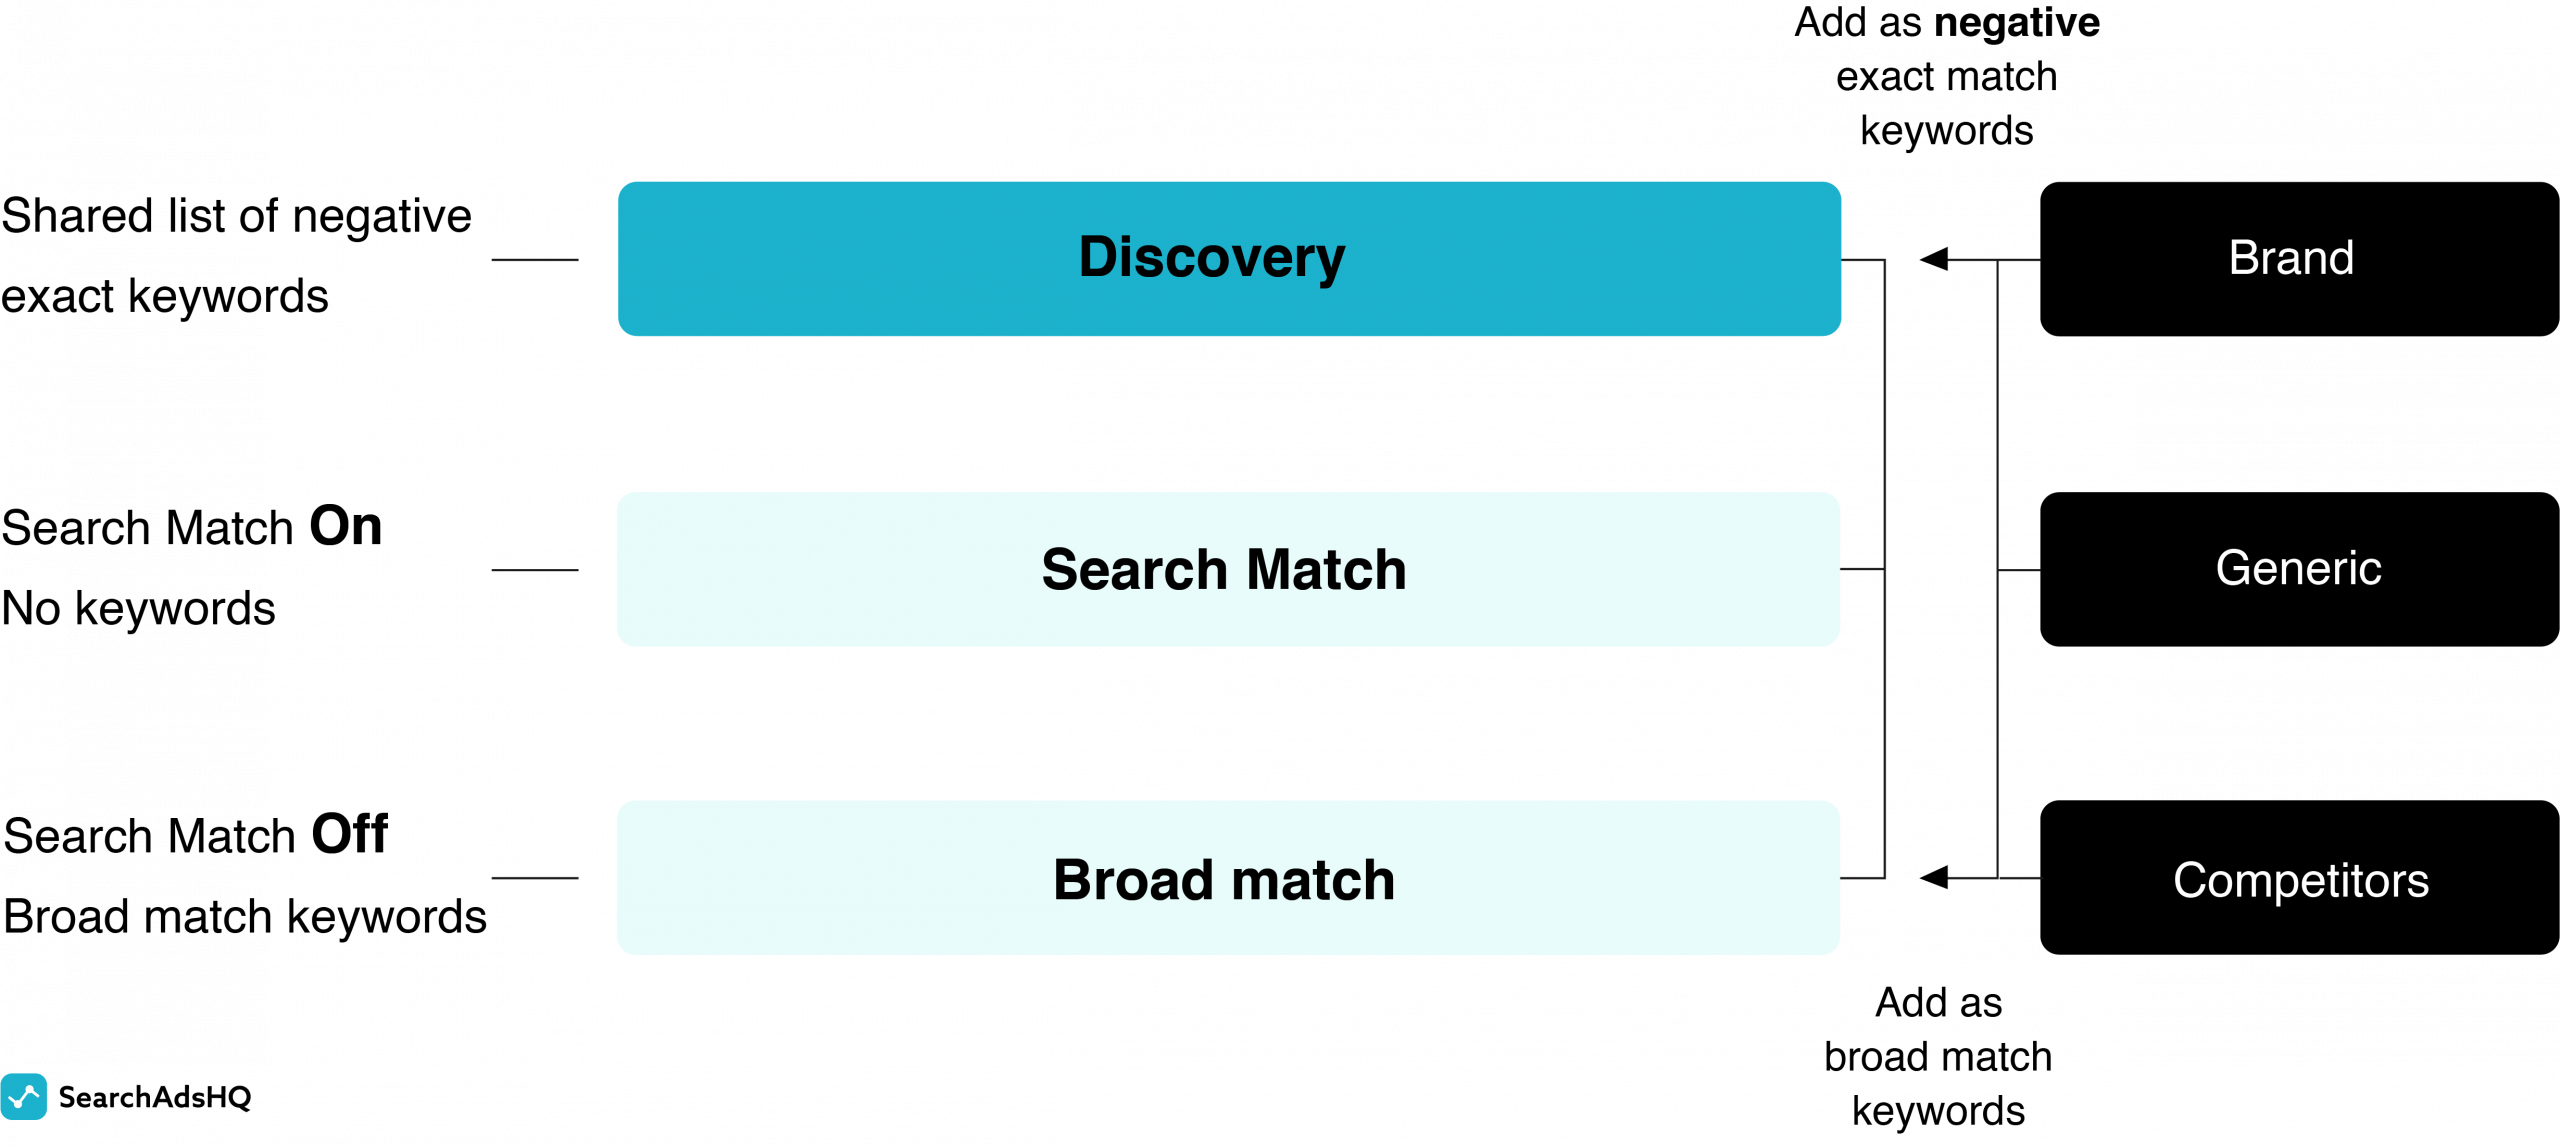 Apple Search Ads account structure - discovery workflow